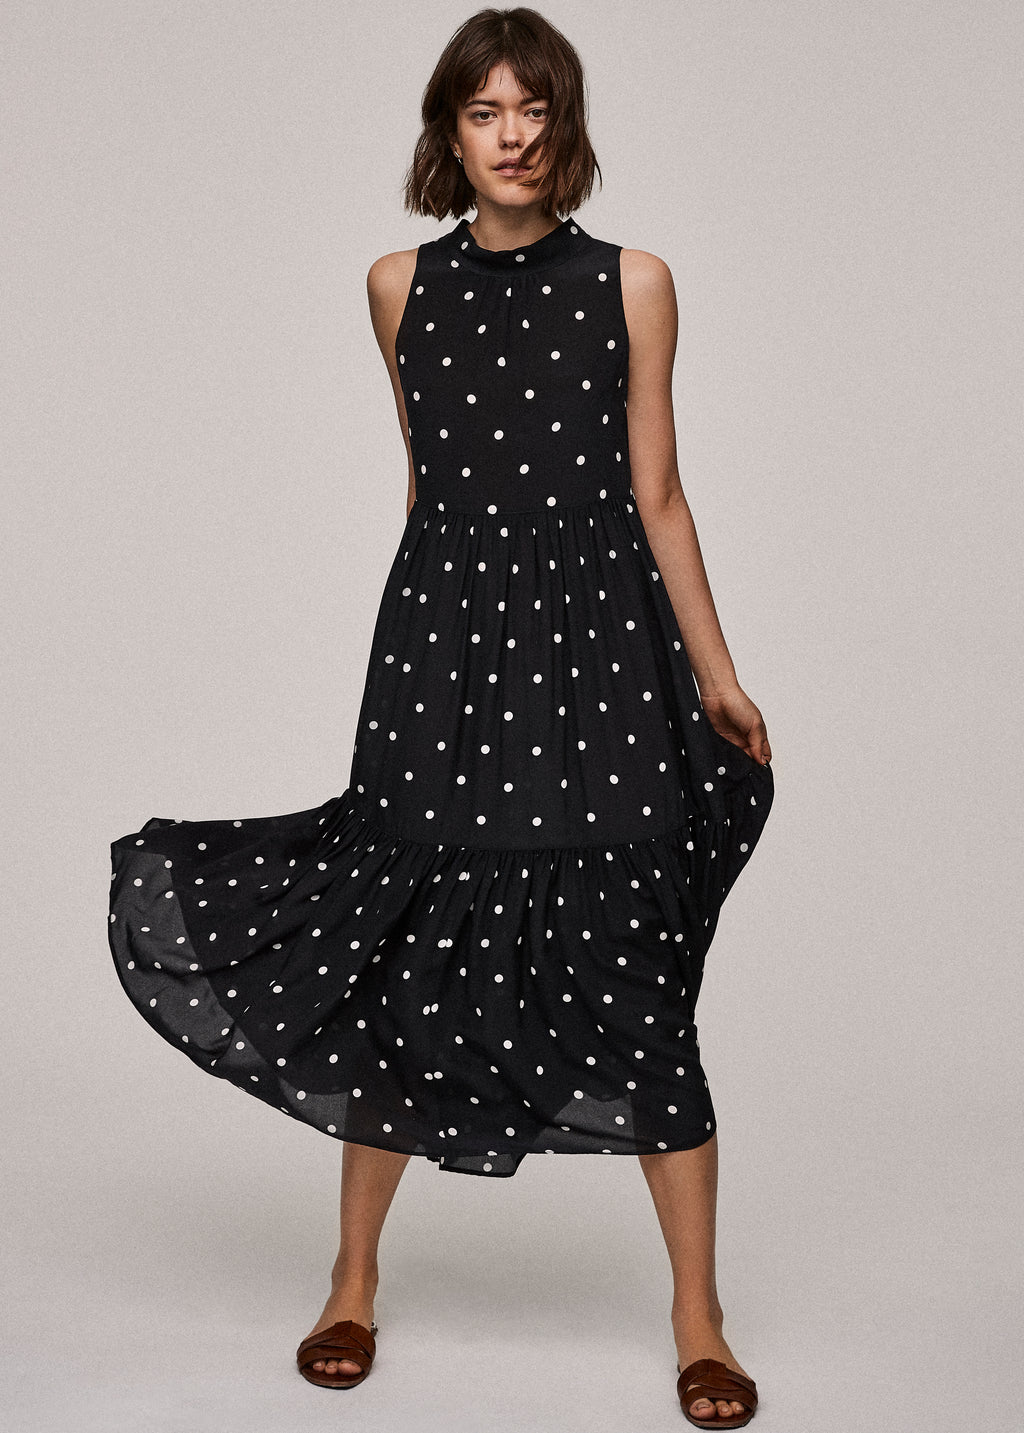 Jet Black Polka Silk Crepe Long Neck Tie Dress - ASCENO London